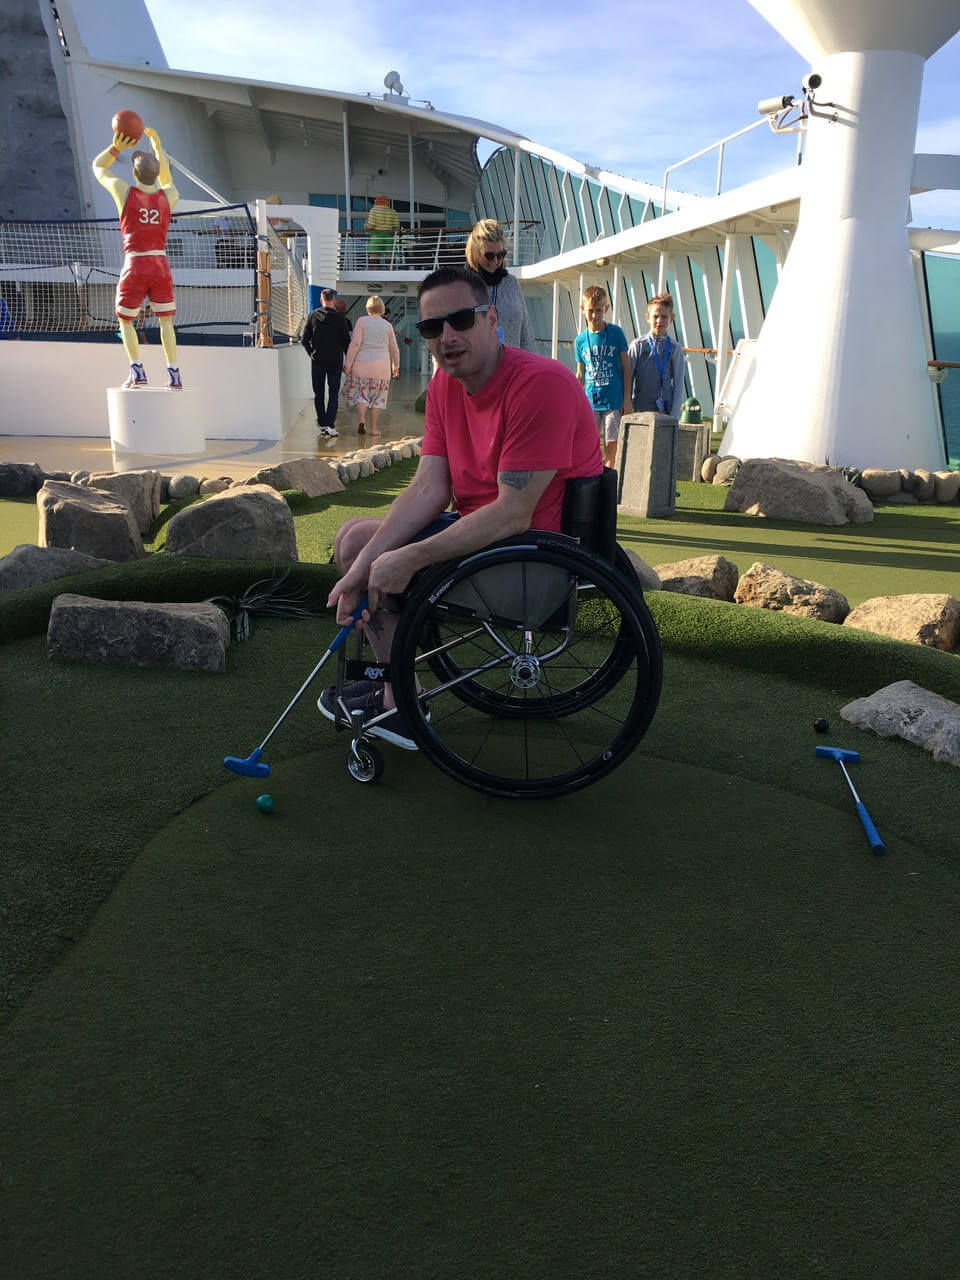 Steve enjoying a spot of mini golf on deck of the Royal Caribbean Cruise.